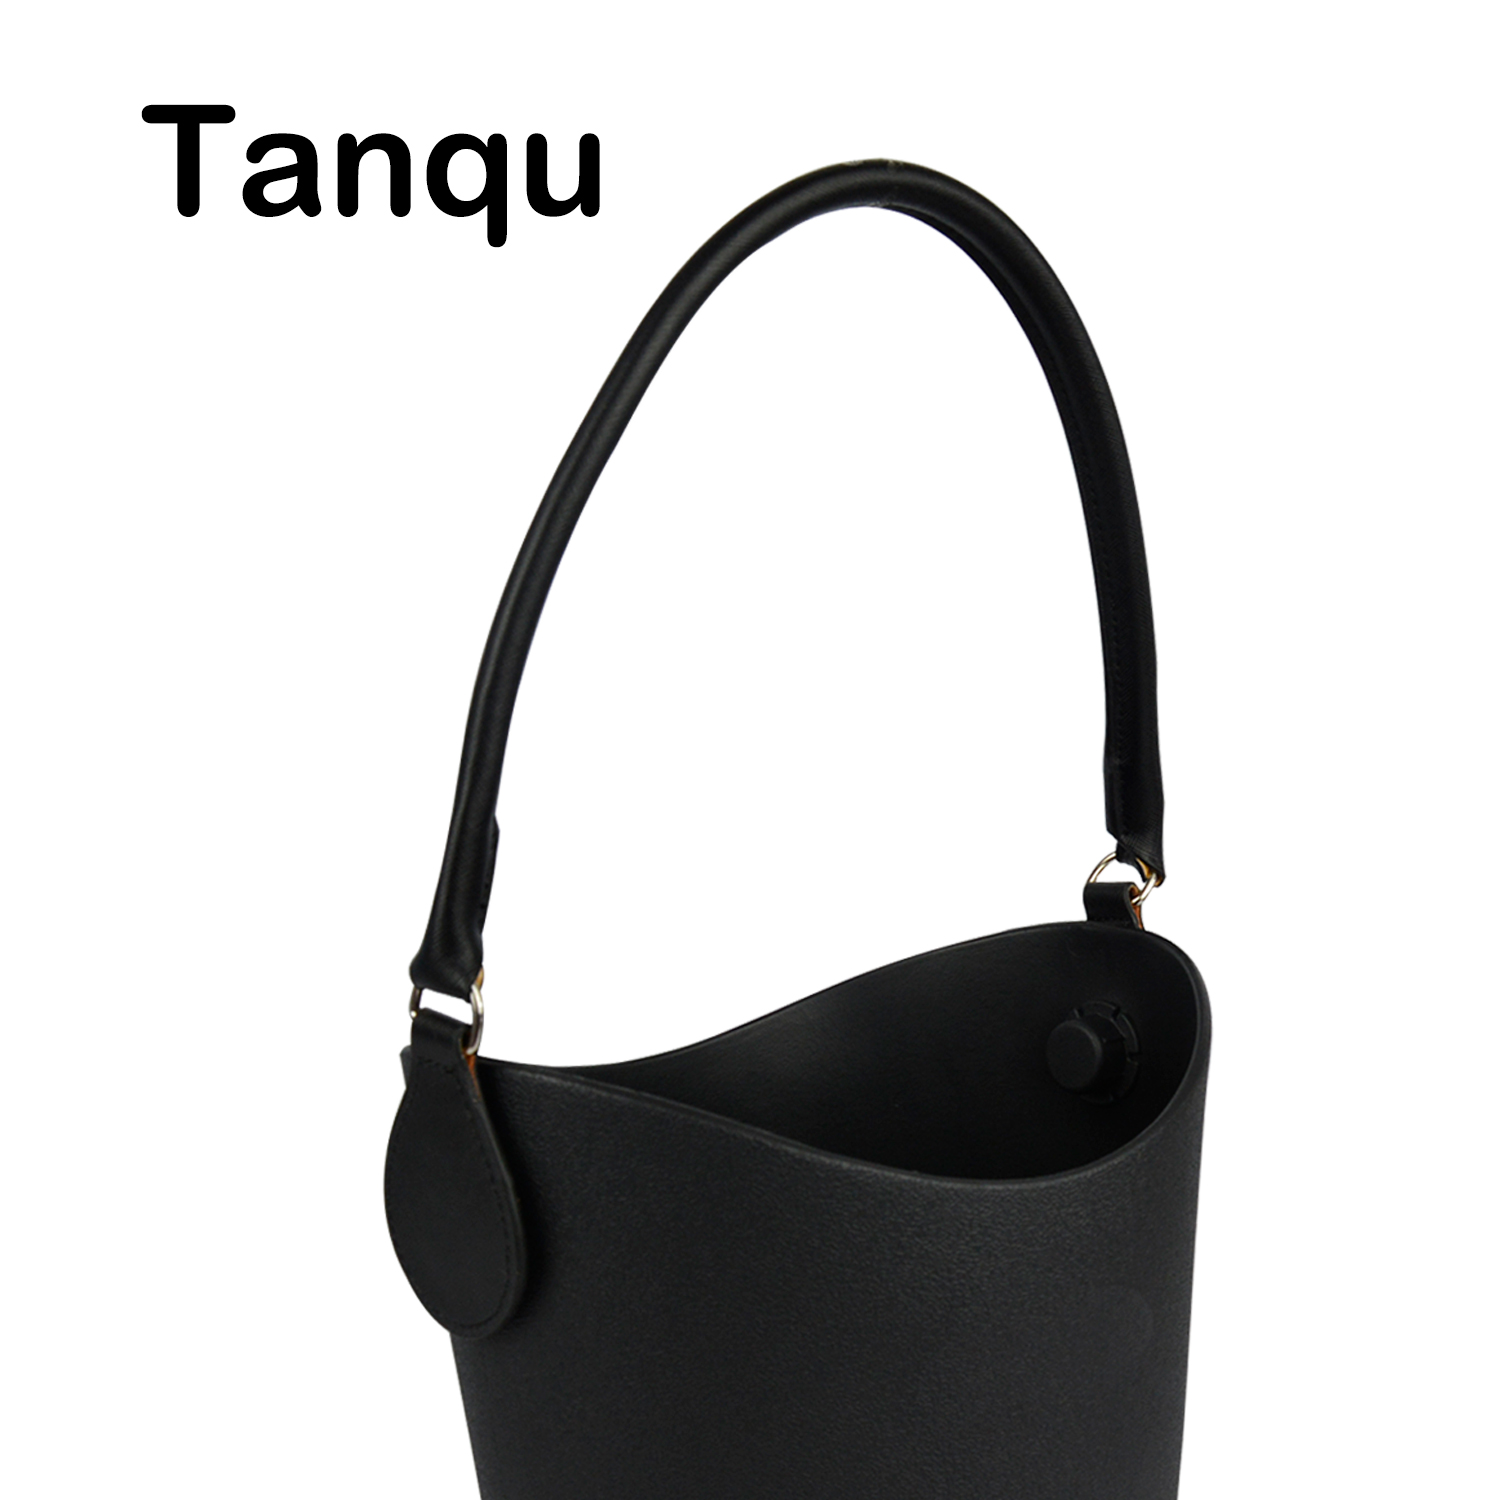 TANQU 1 Piece Concise Round Leather Handle With D Buckle Drops For Classic Mini Obag Basket Bucket City Chic Women Handbag O Bag